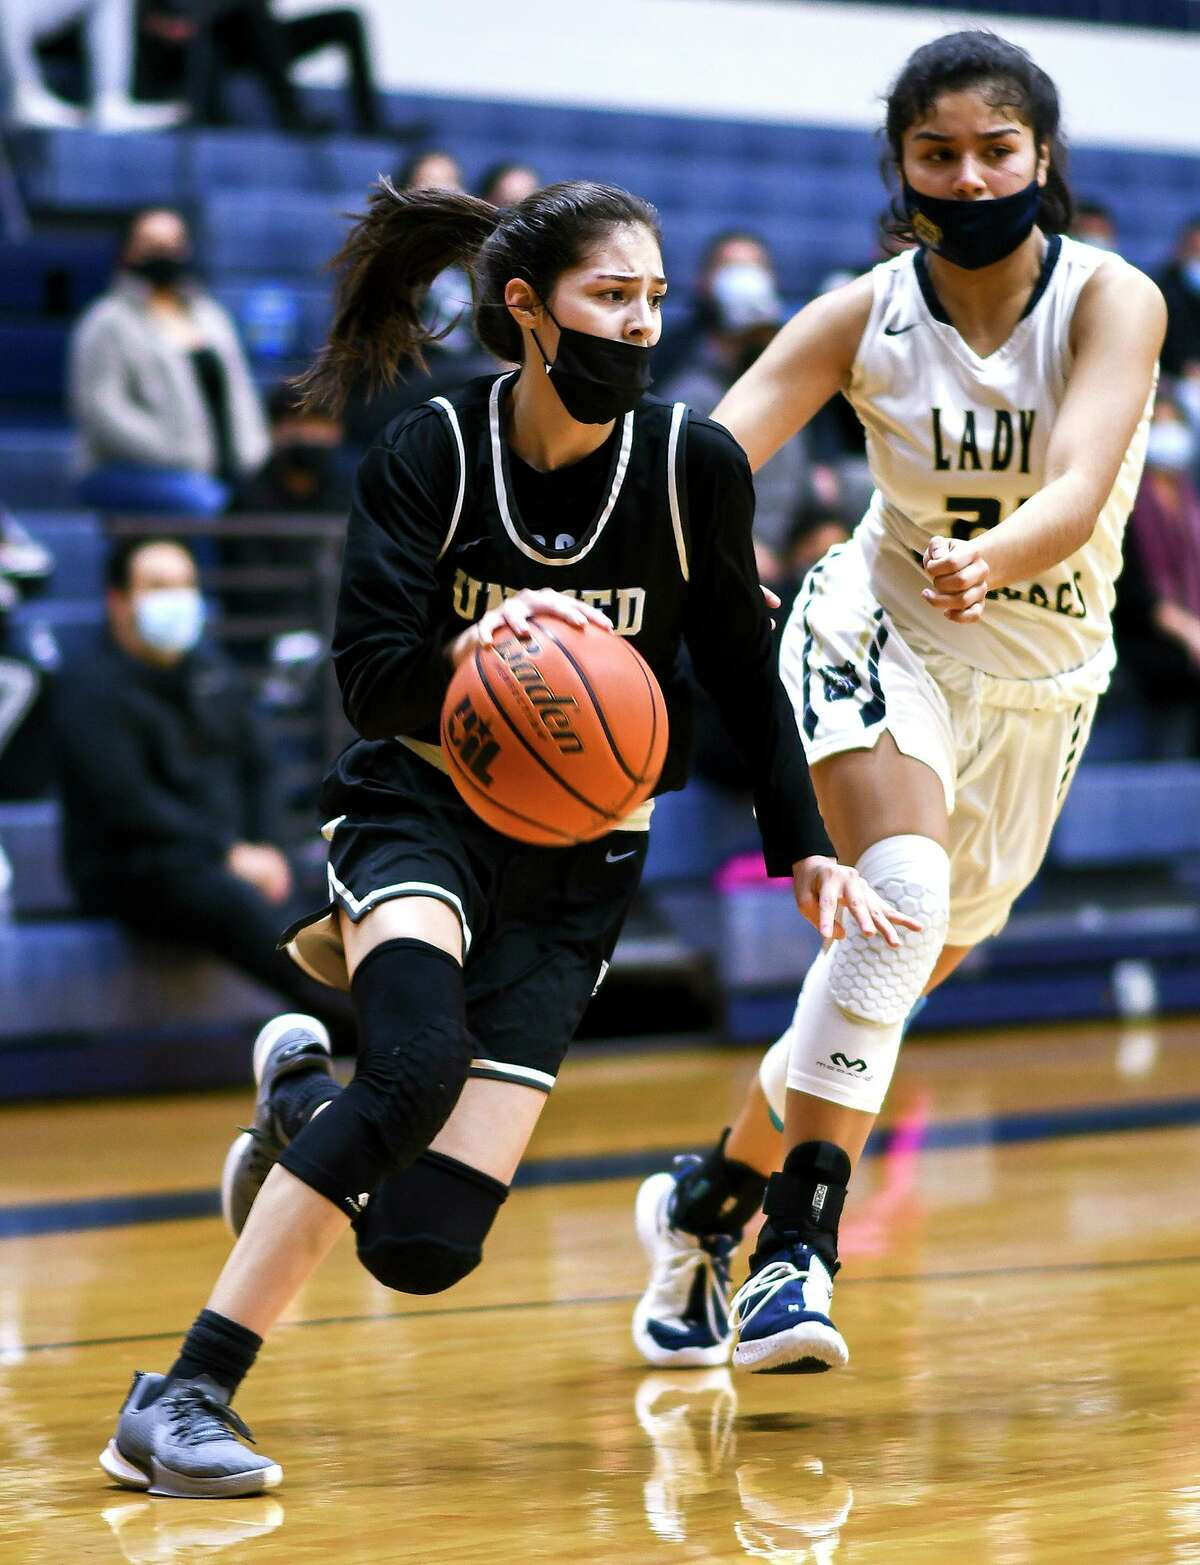 Bridgette Tello scored a game-high 20 points in United South's 61-52 win at Alexander.